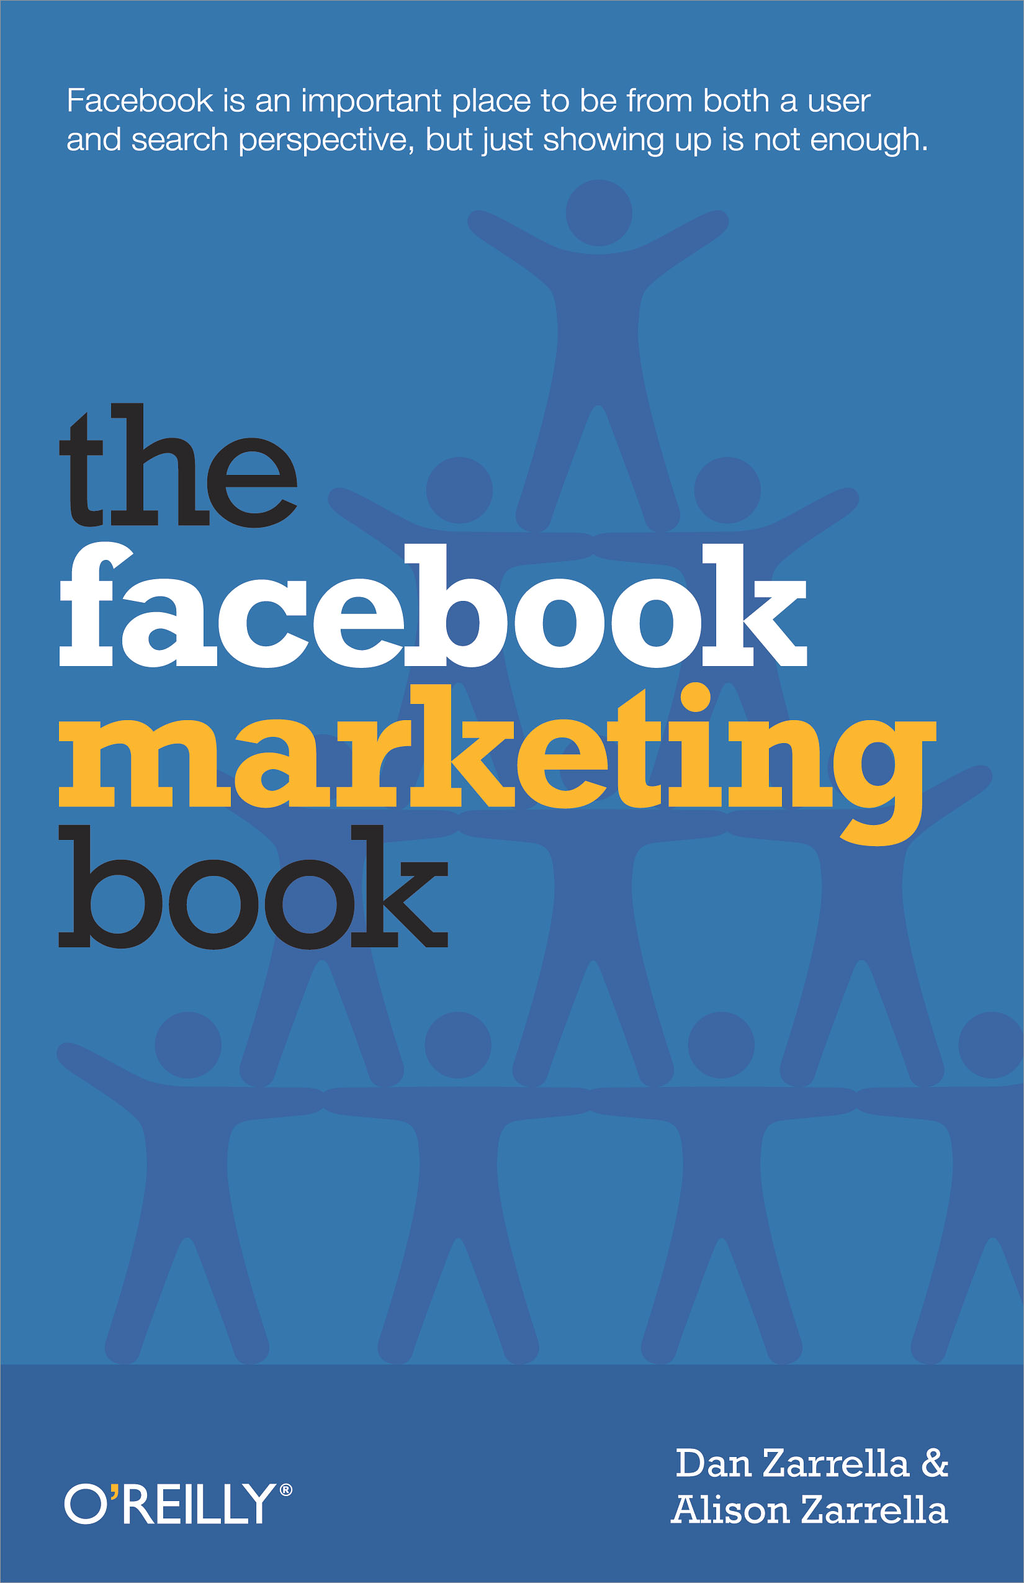 The Facebook Marketing Book By: Alison Zarrella,Dan Zarrella